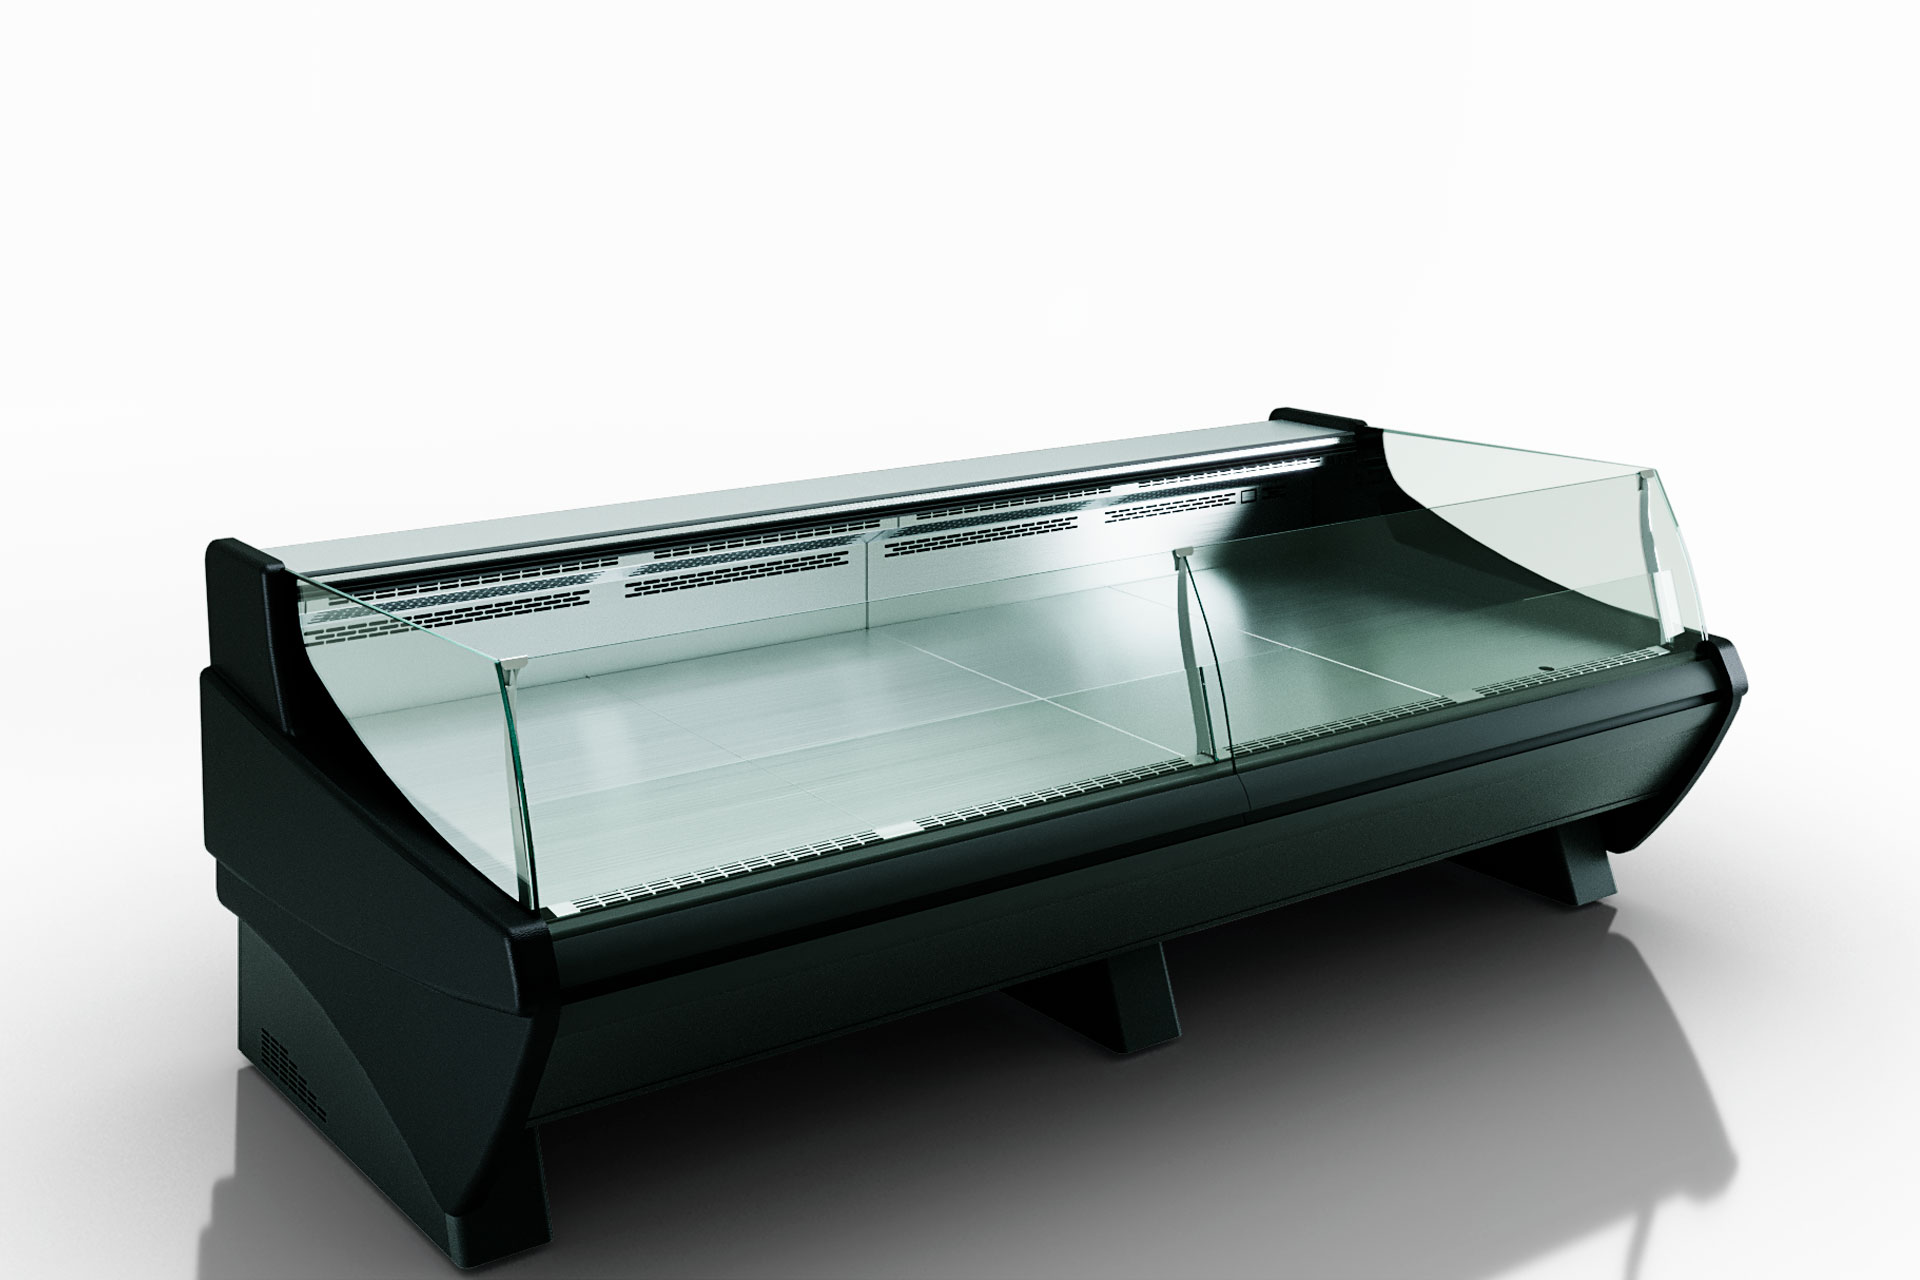 Counter Symphony luxe MG 120 deli self 085-DLM